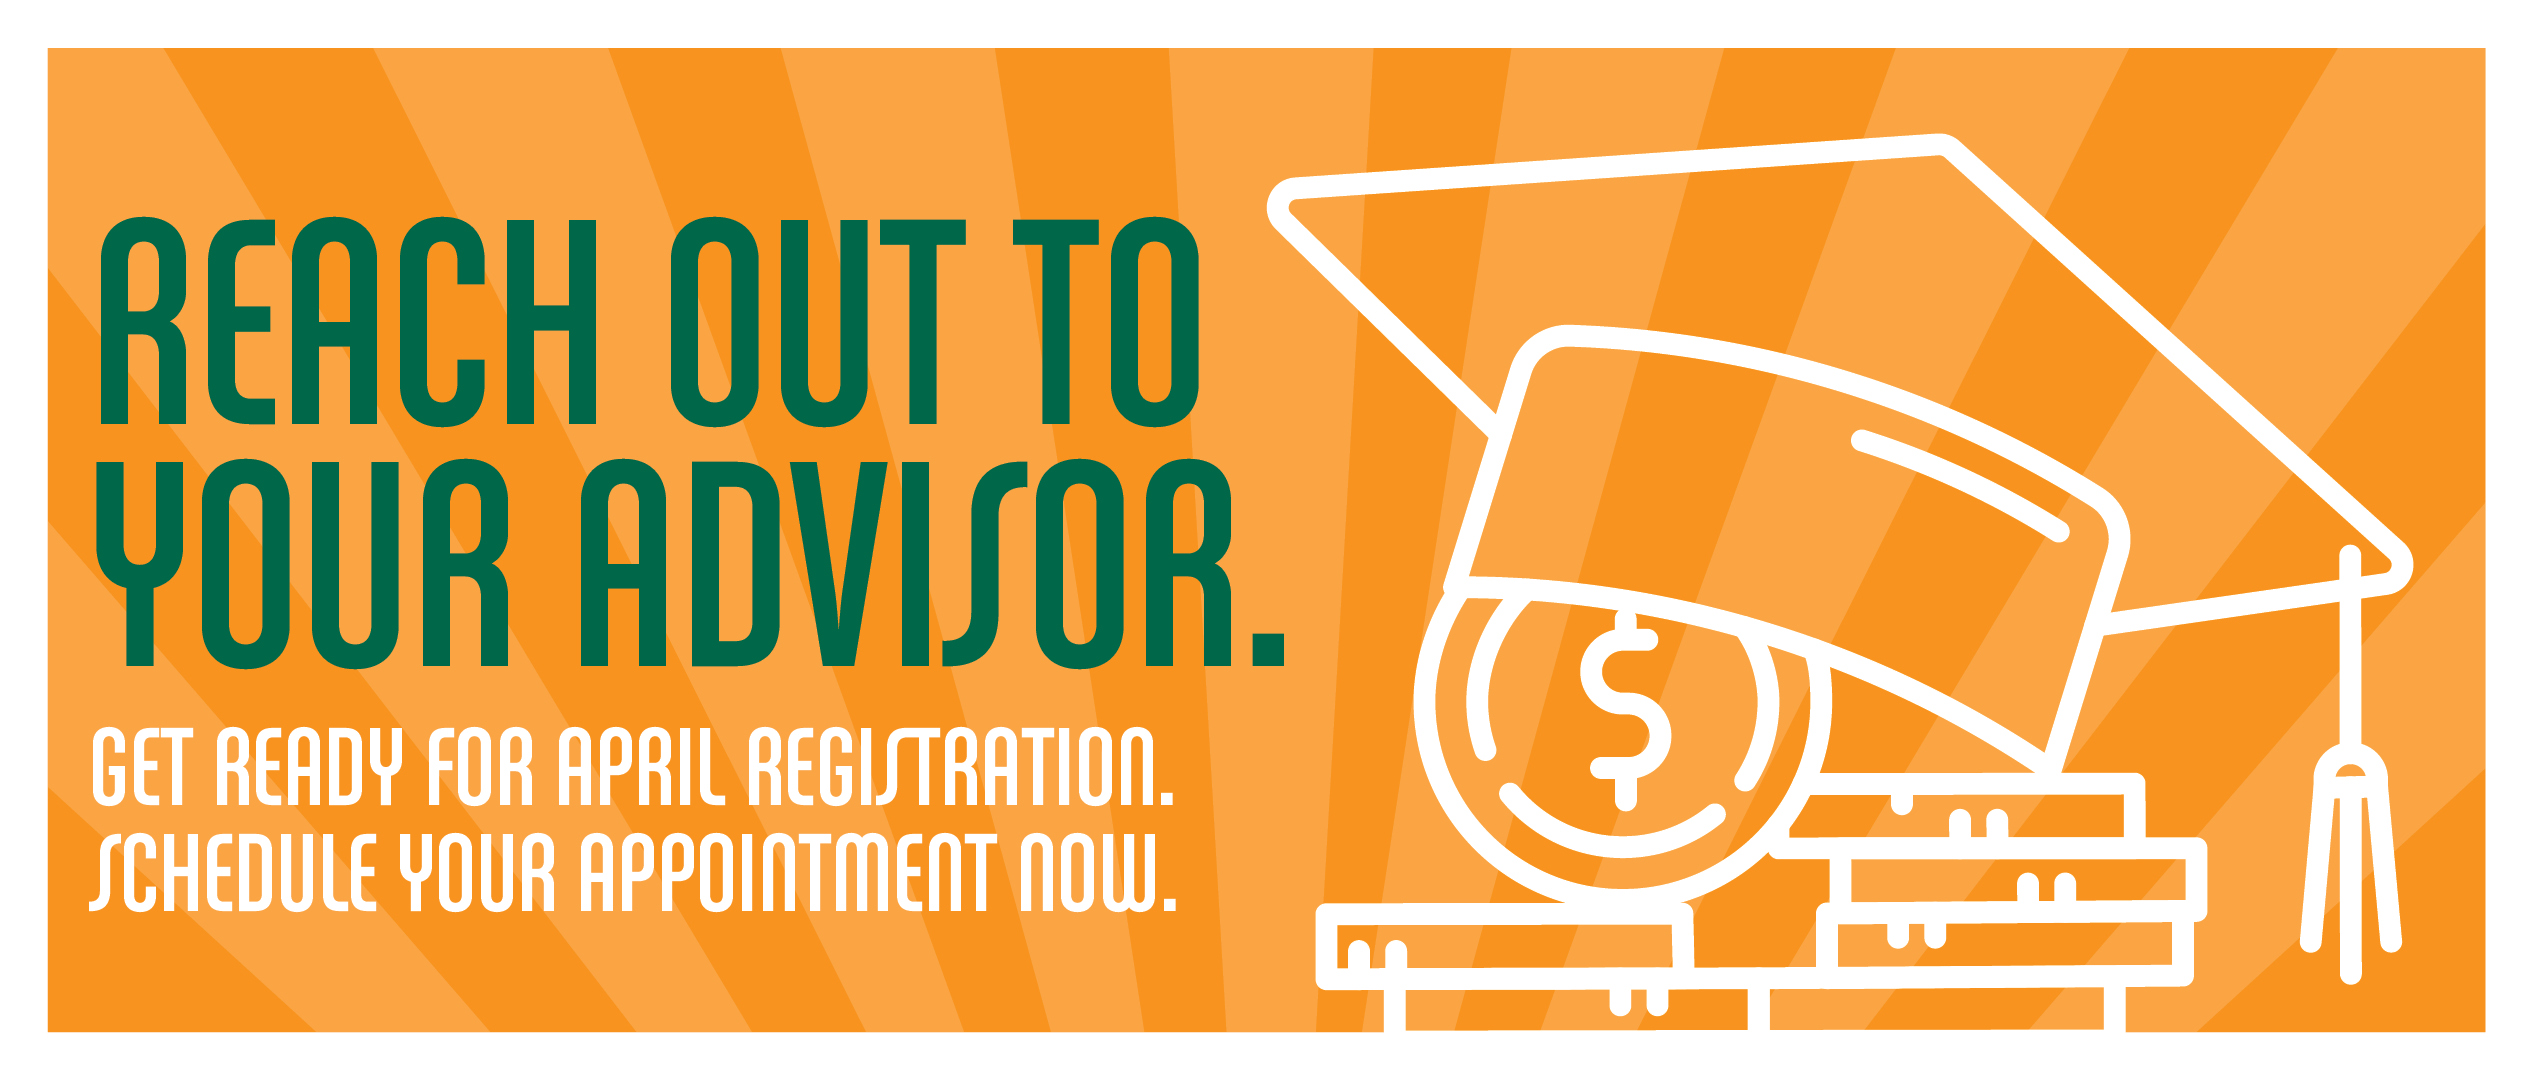 Reach out to your advisor. Get ready for April registration. Schedule your appointment now.